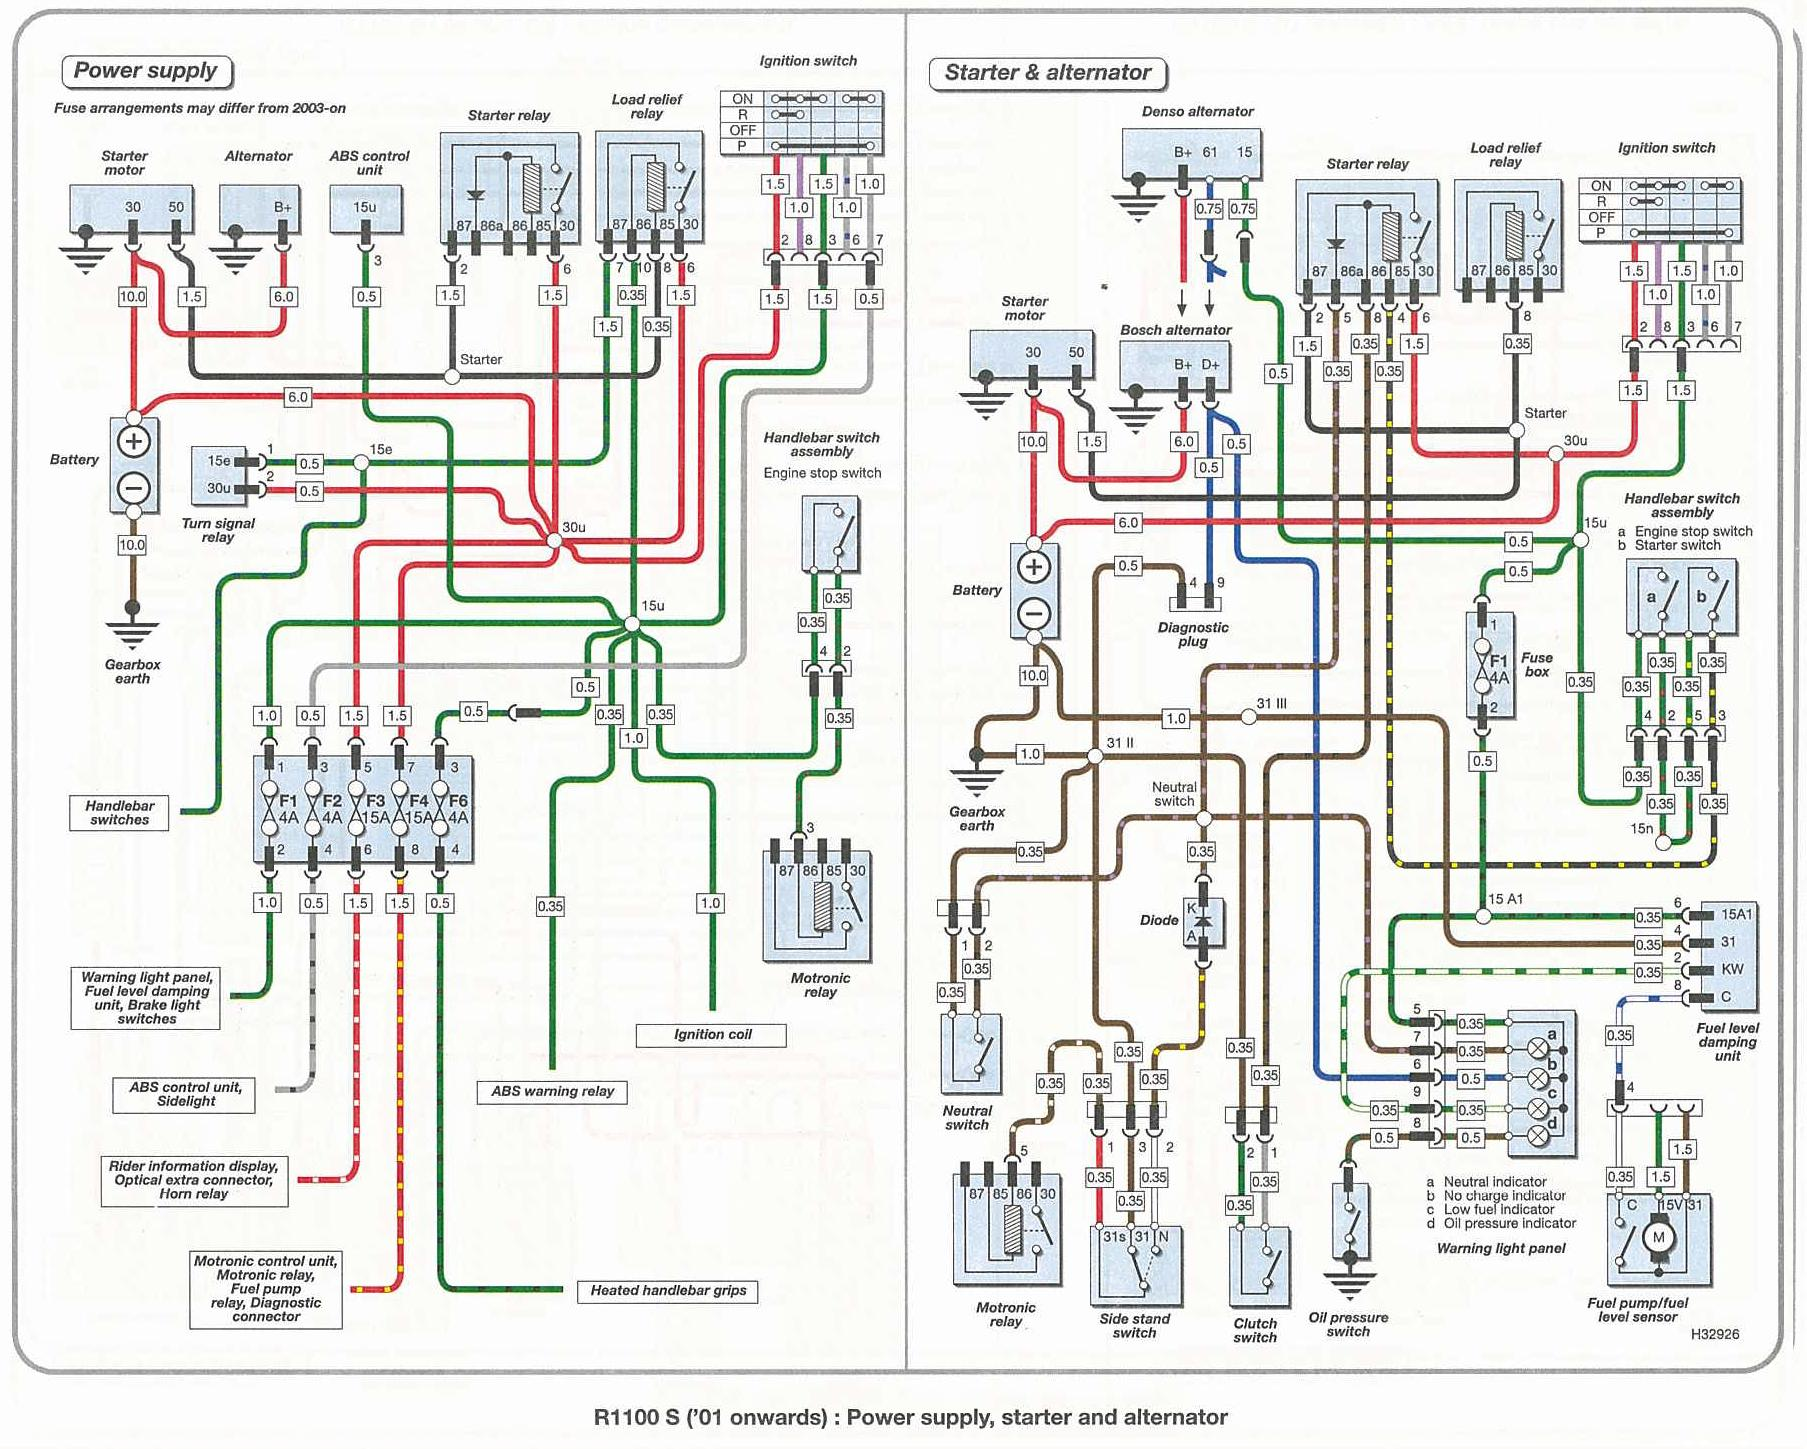 wiring05 bmw r1100s wiring diagrams bmw wiring diagrams at mifinder.co